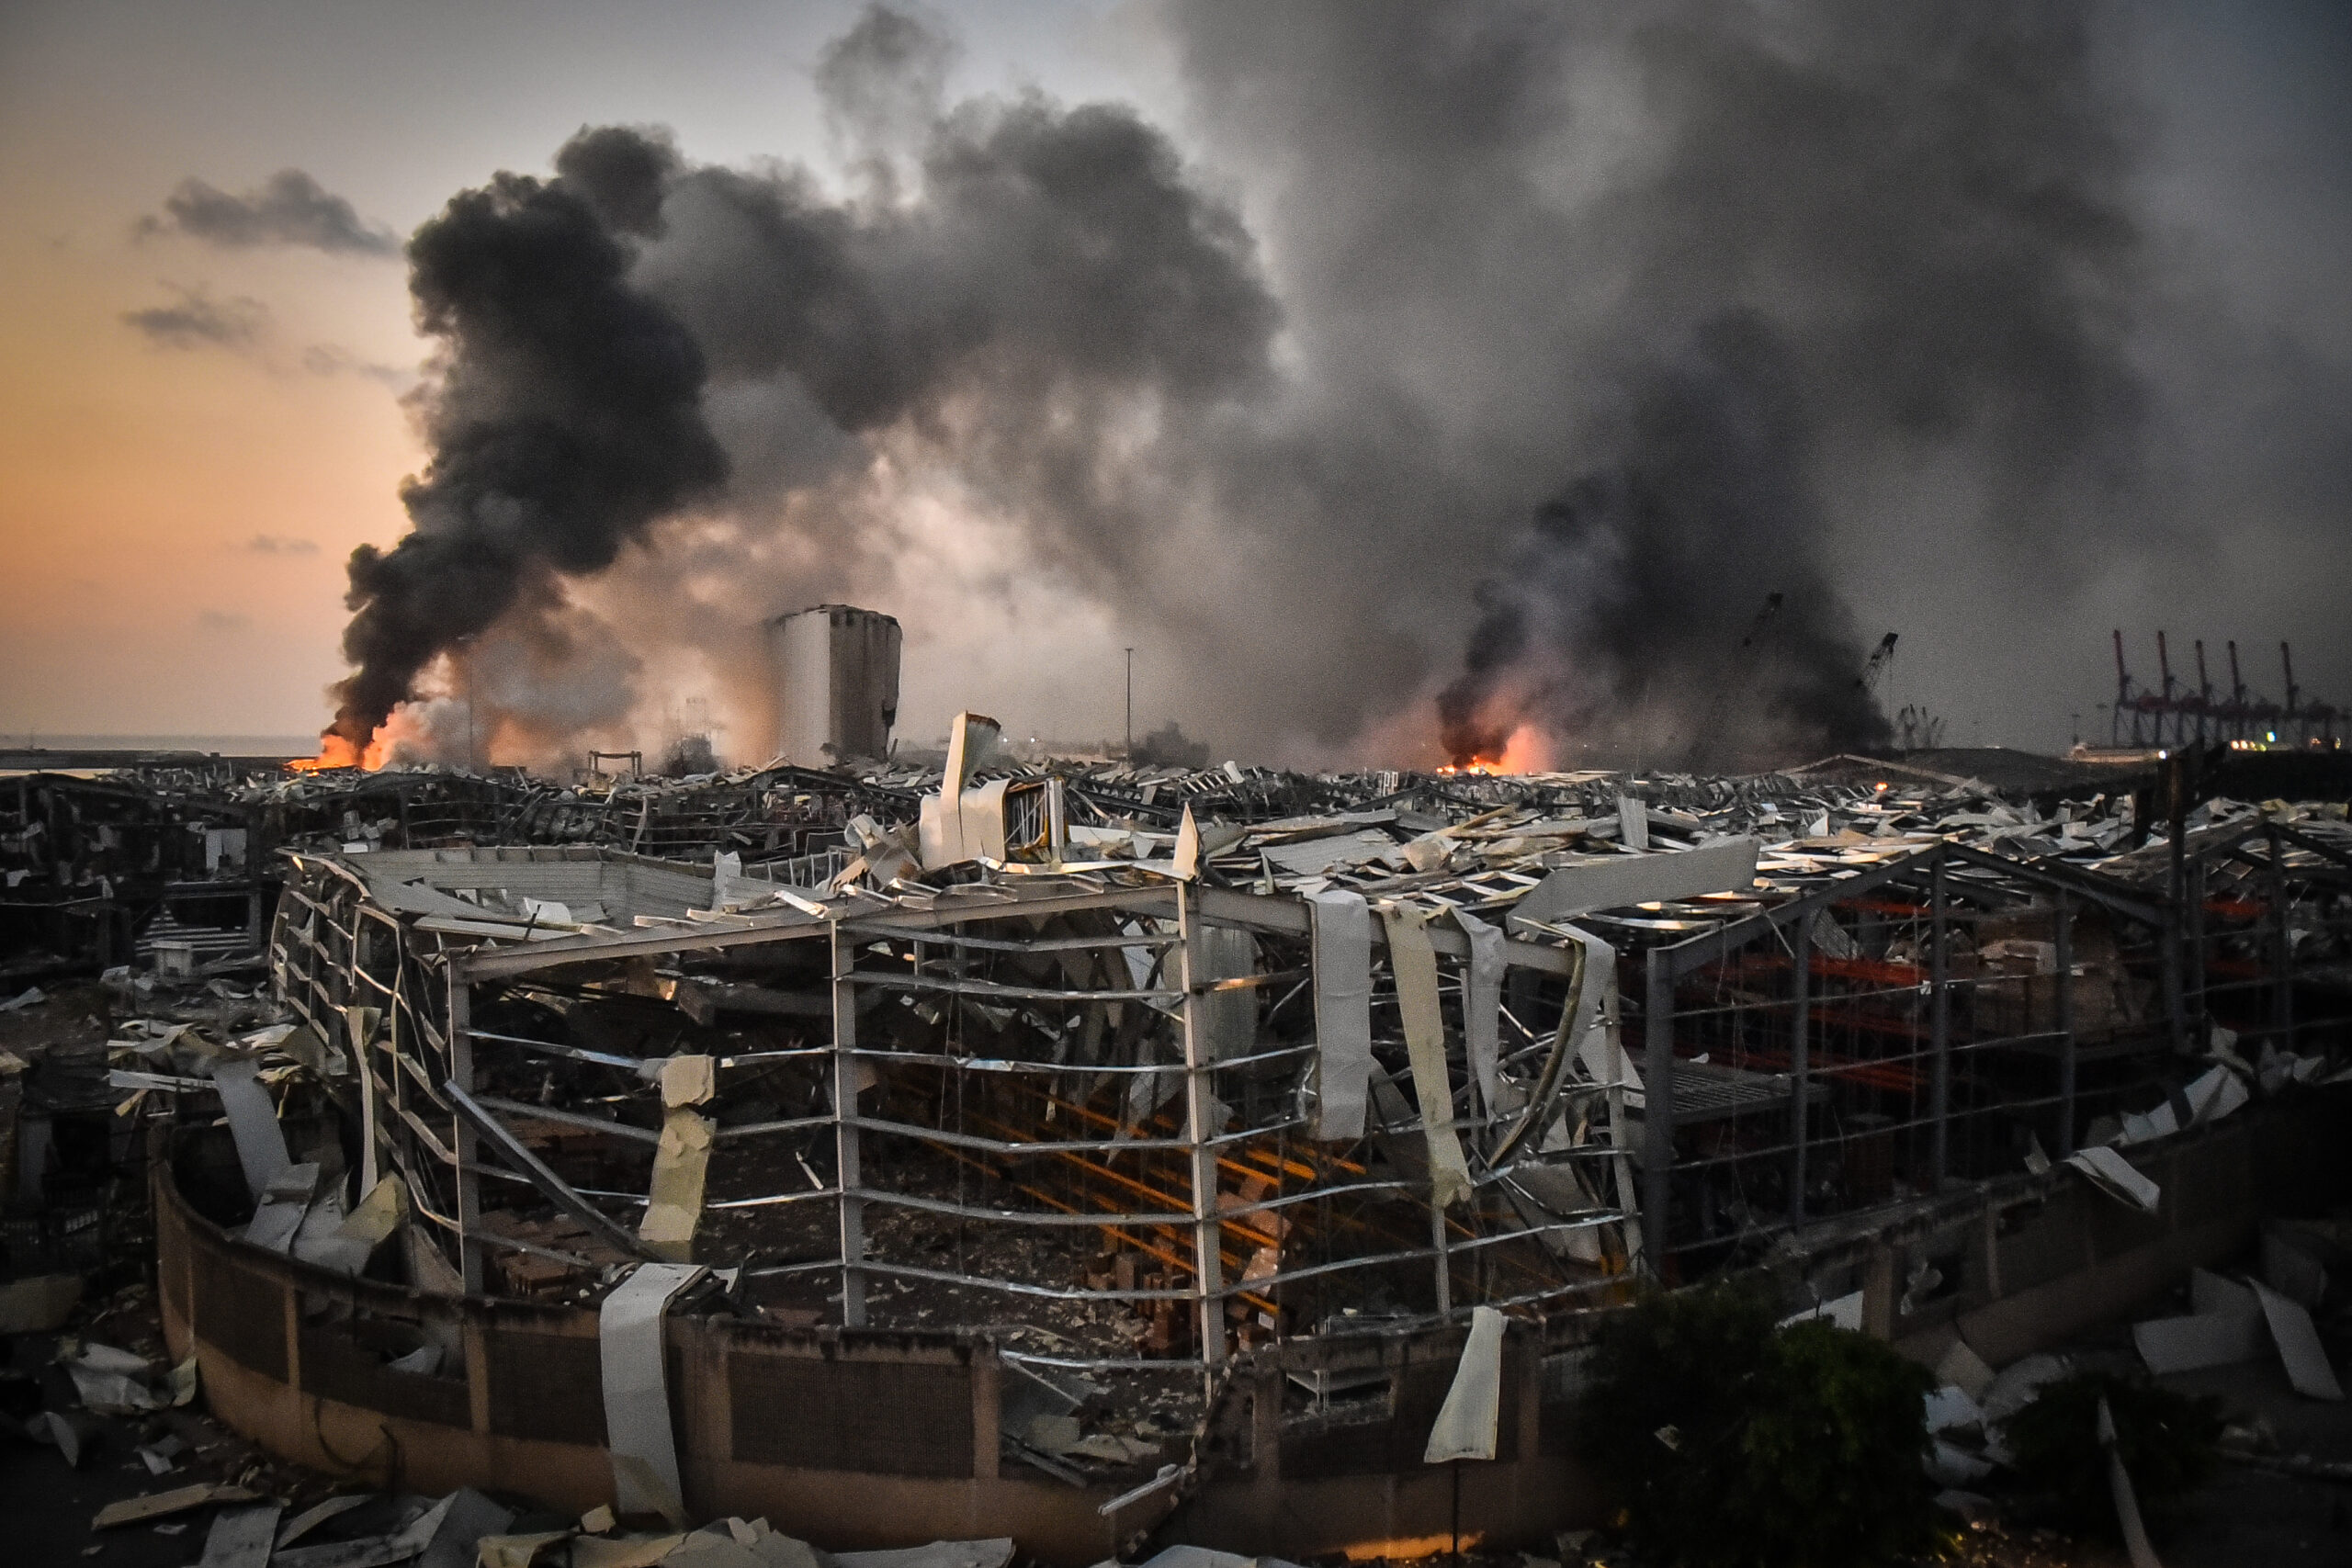 Smoke rises from the port after the explosion on August 4, 2020 in Beirut, Lebanon. According to the Lebanese Red Cross, at the moment over 100 people died in the explosion and over 4,000 were injured in explosion at Beirut Port. Officials said a waterfront warehouse storing explosive materials, reportedly 2,700 tons of ammonium nitrate, was the cause of the blast.(Photo by Fadel Itani/NurPhoto via Getty Images)